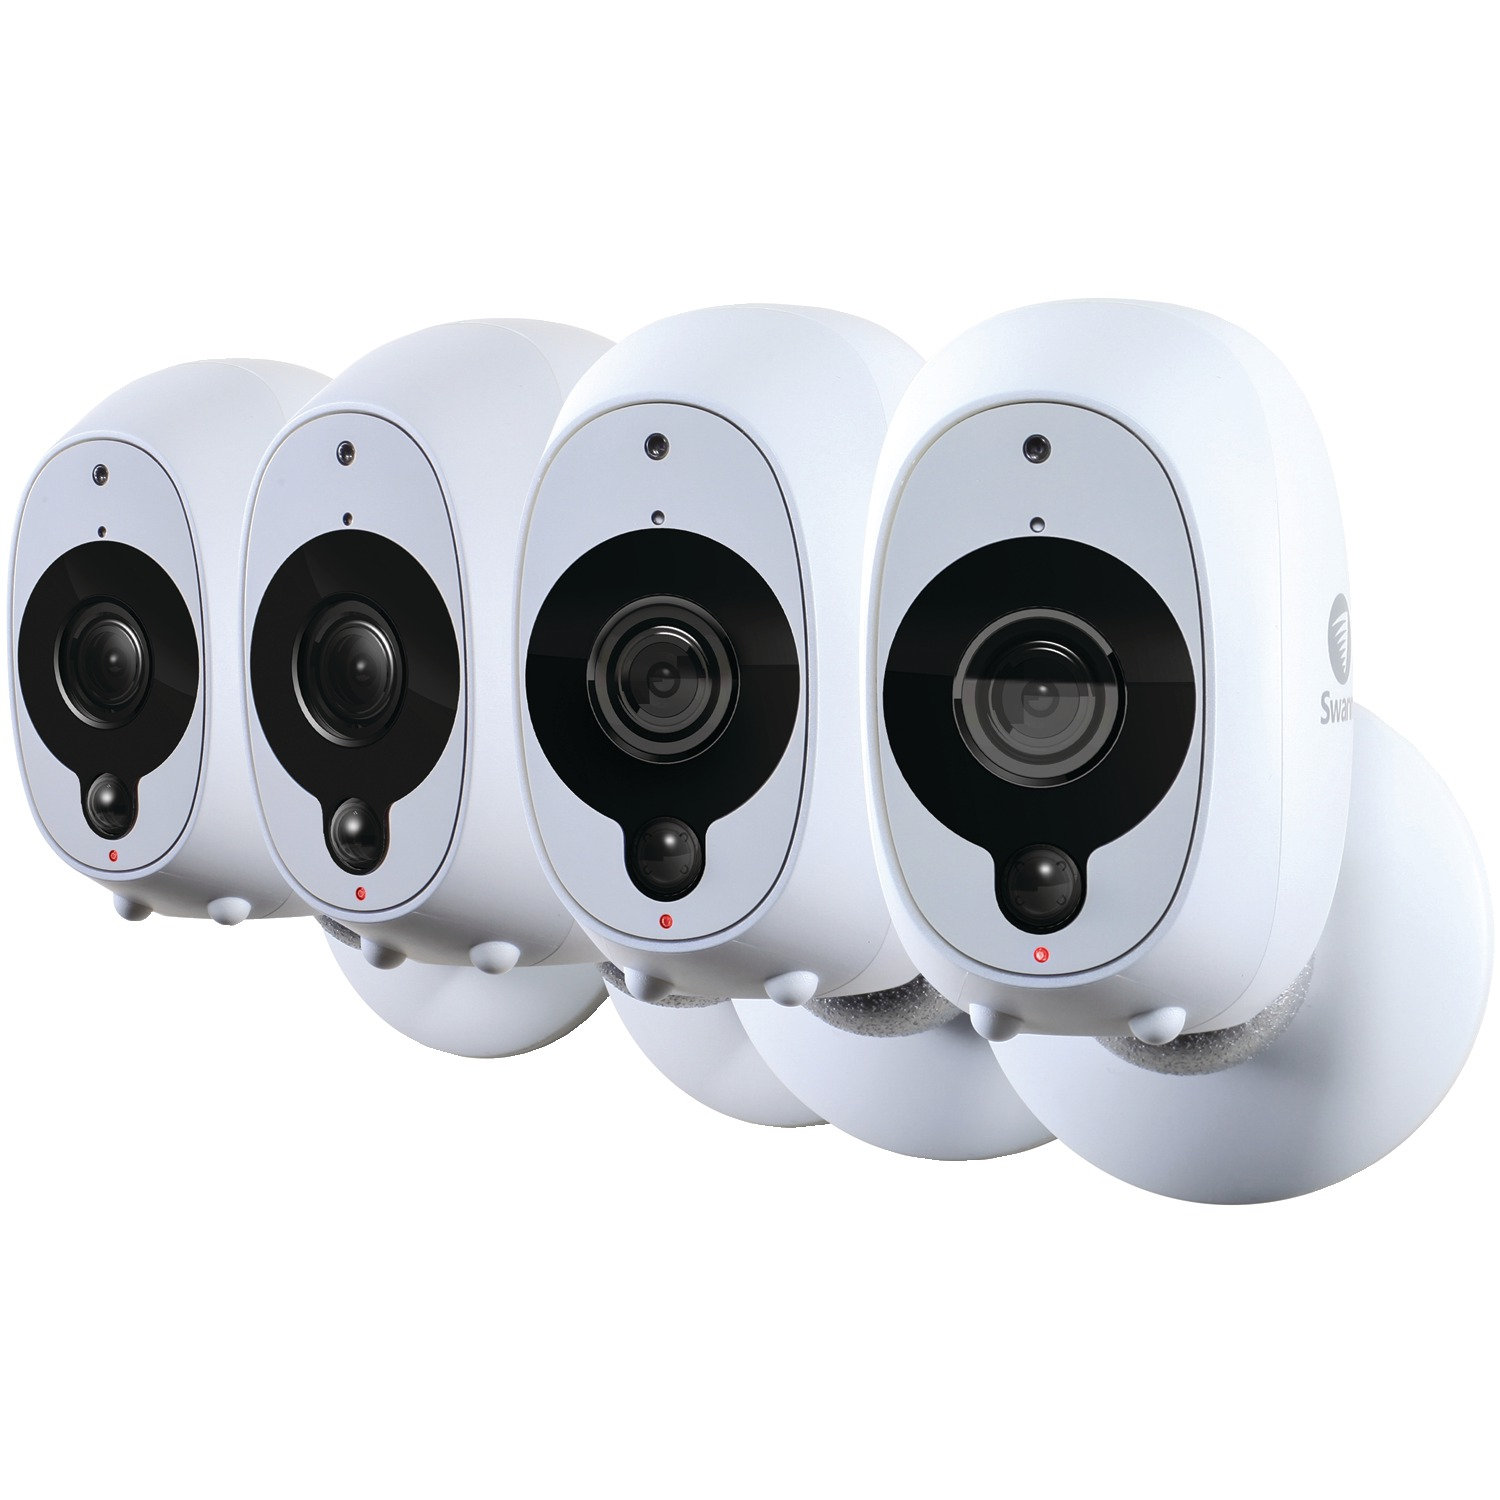 Swann SWWHD-INTCAMPK4-US 1080p Full HD Battery-Powered Wire-Free Camera (4Pk)